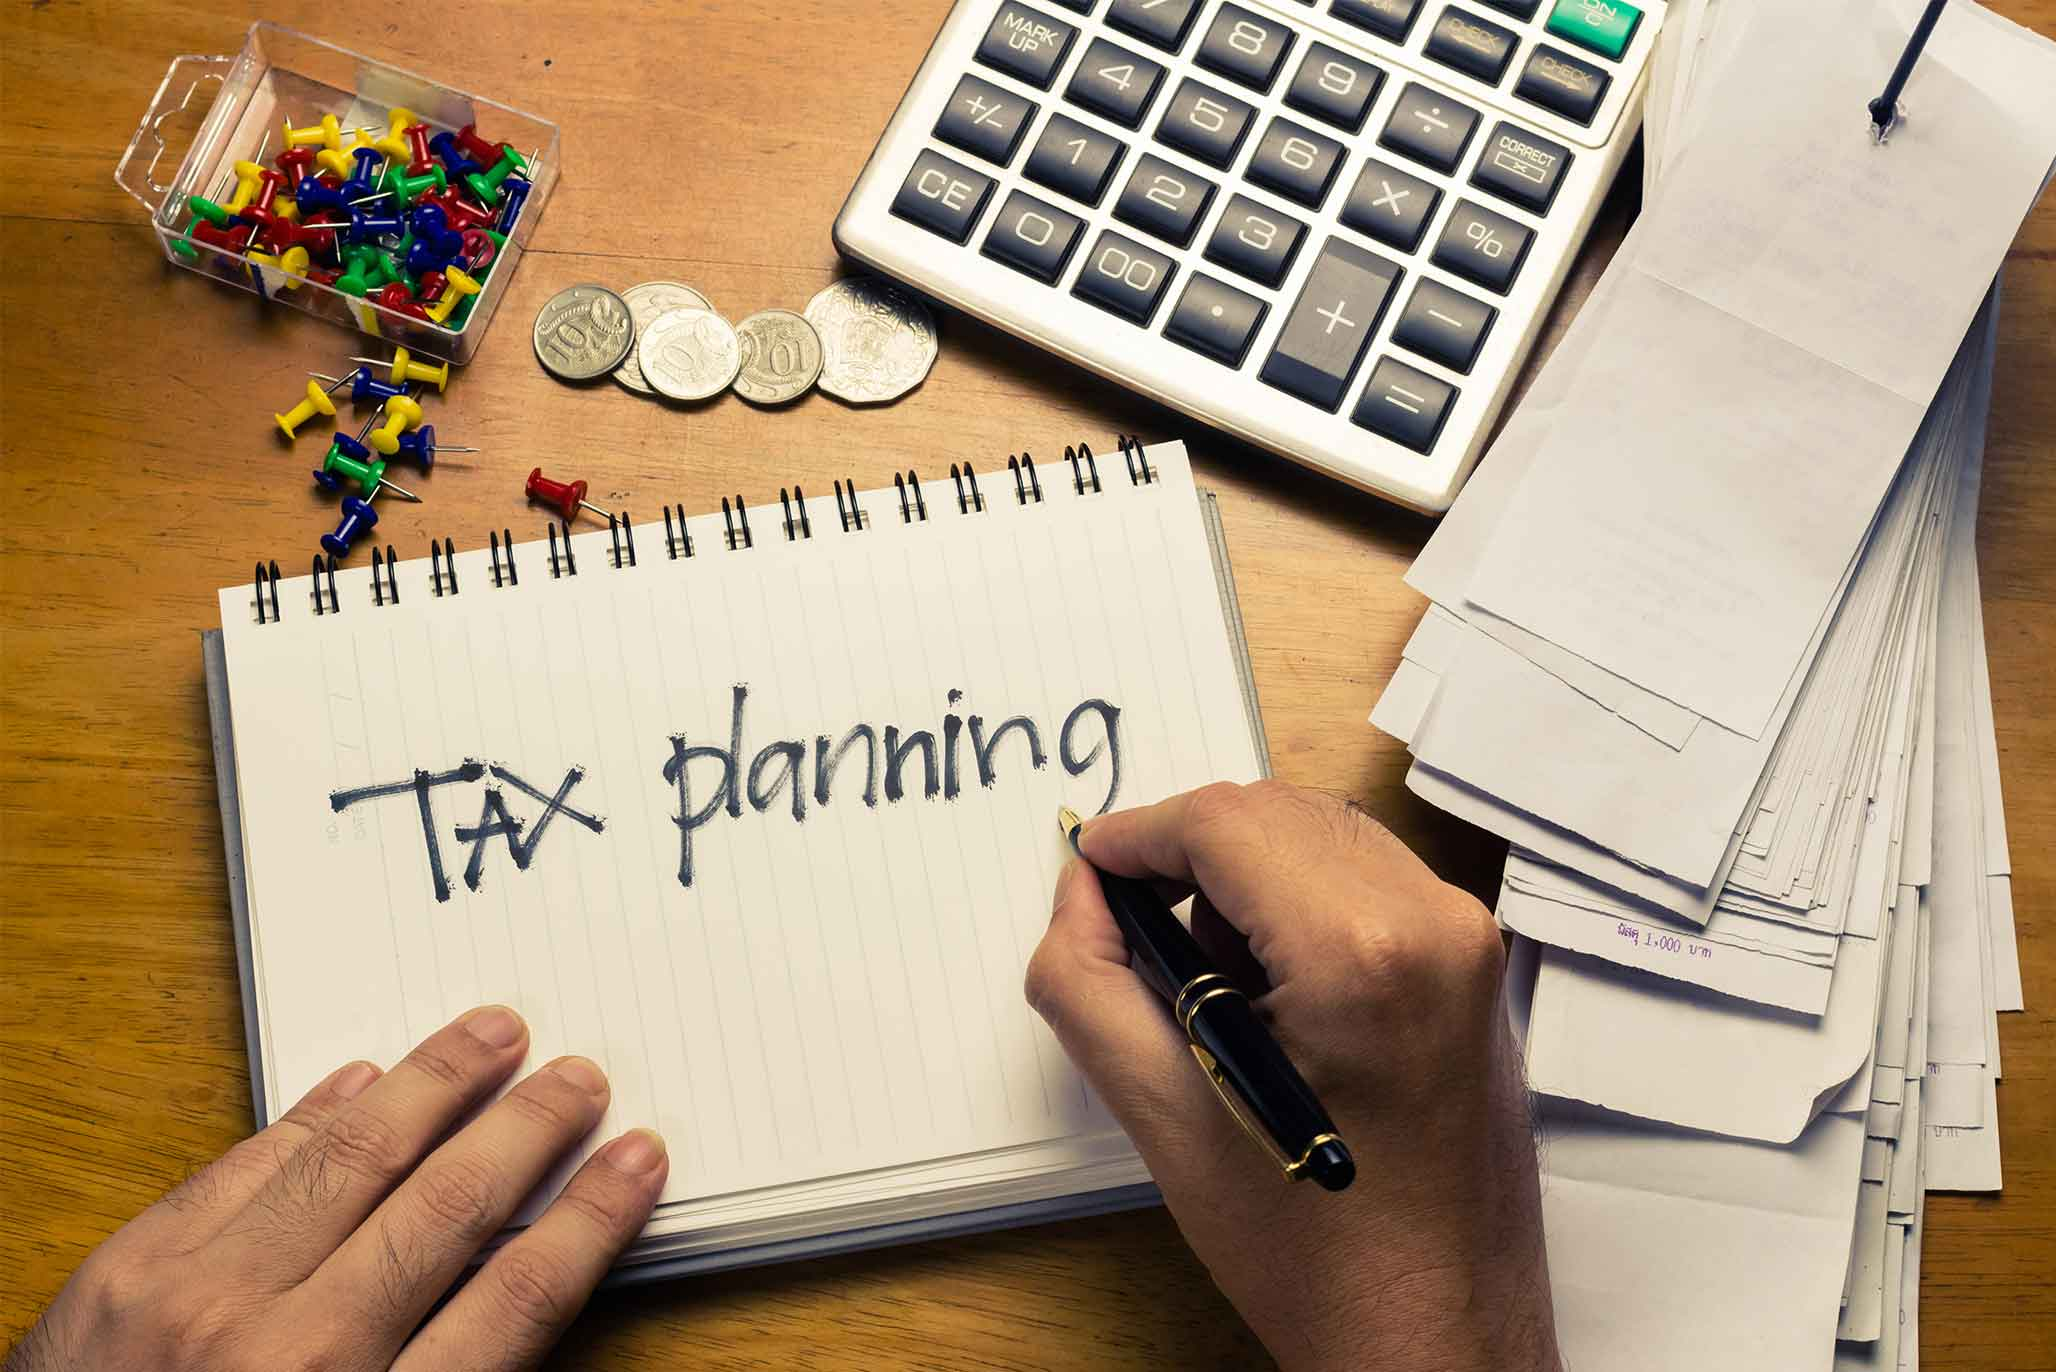 All the Salaried Employees out there, Save More with these Simple Tax Planning Tips